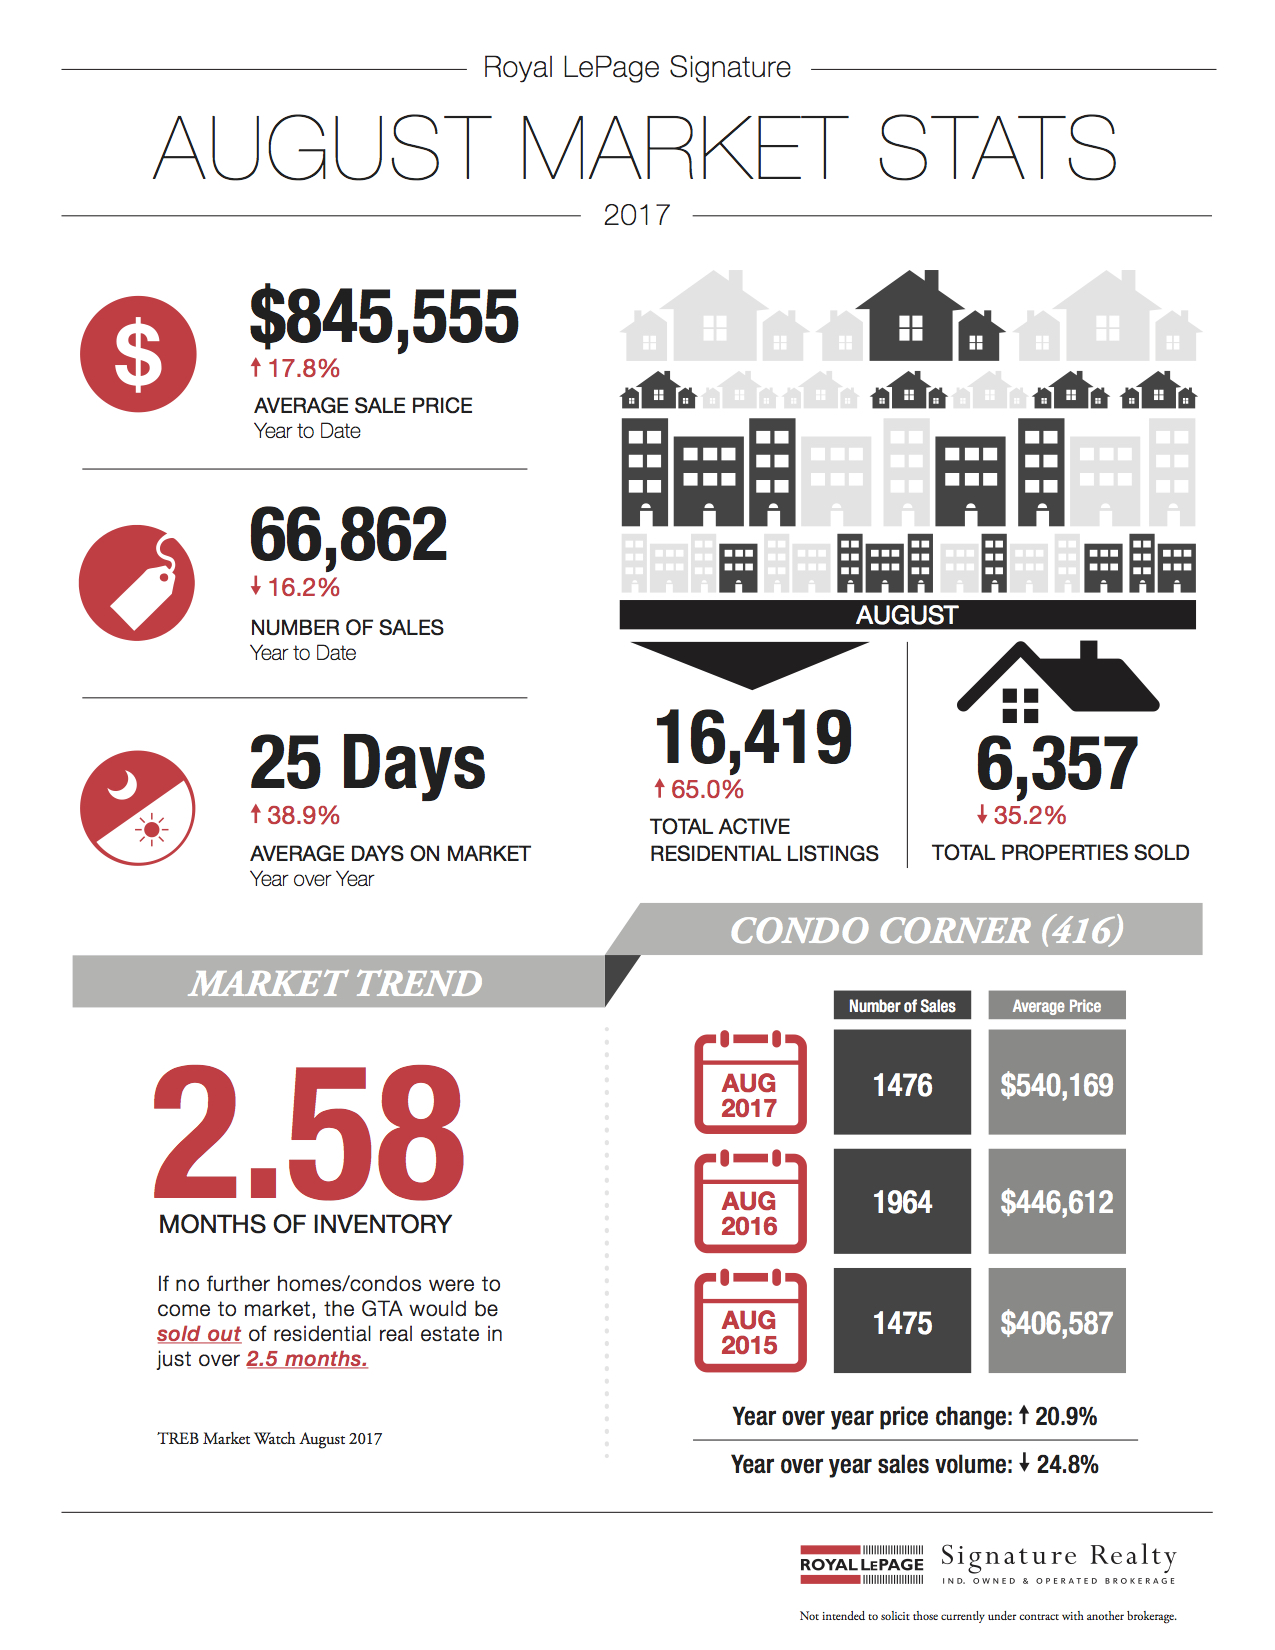 August 2017 Market Stats: Infographic & Report Photo